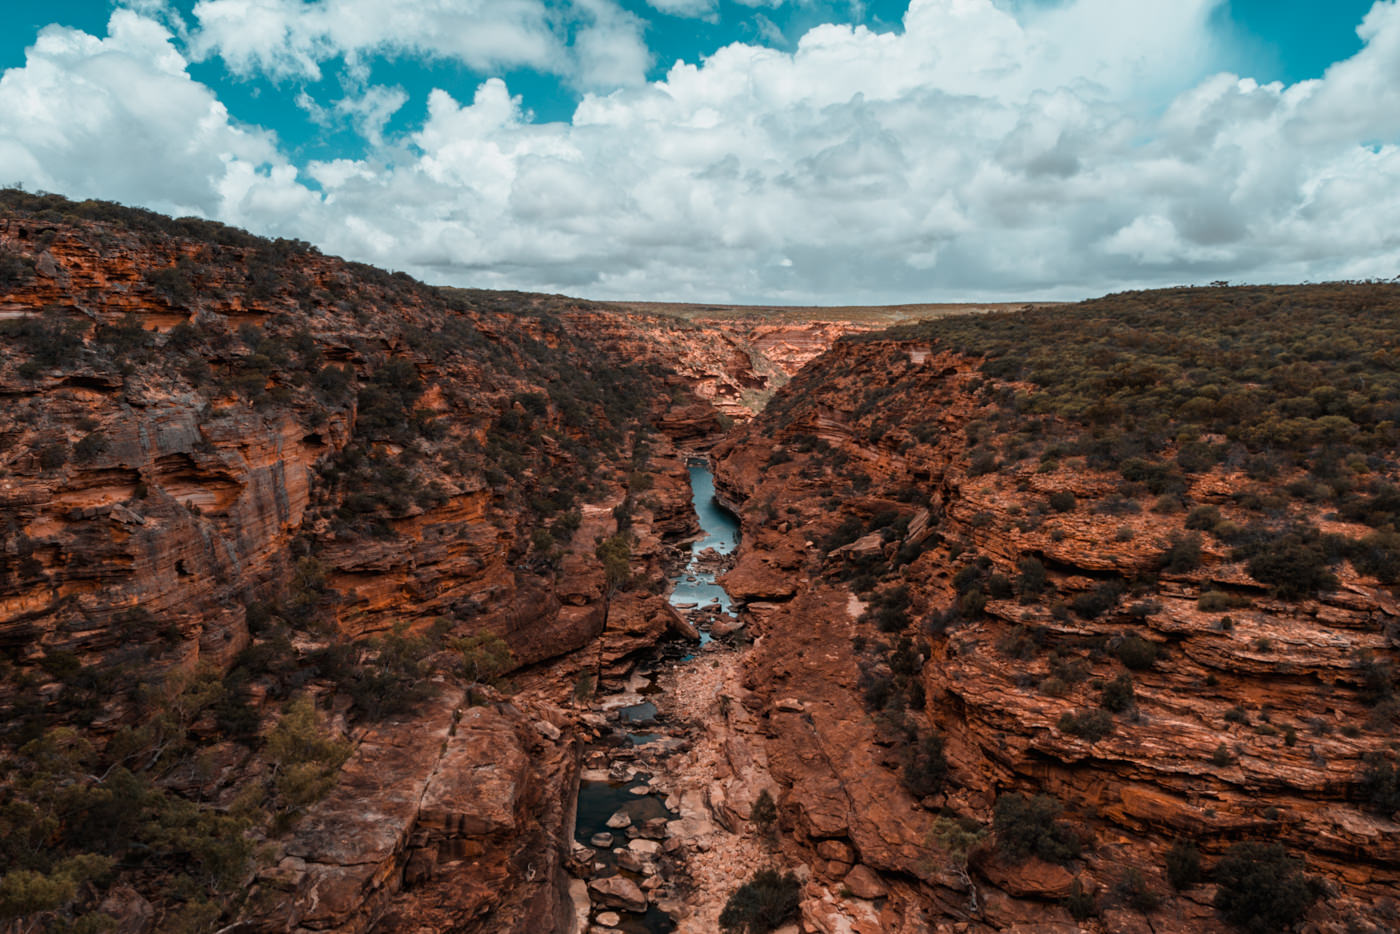 Fluss im Kalbarri Nationalpark in Australien